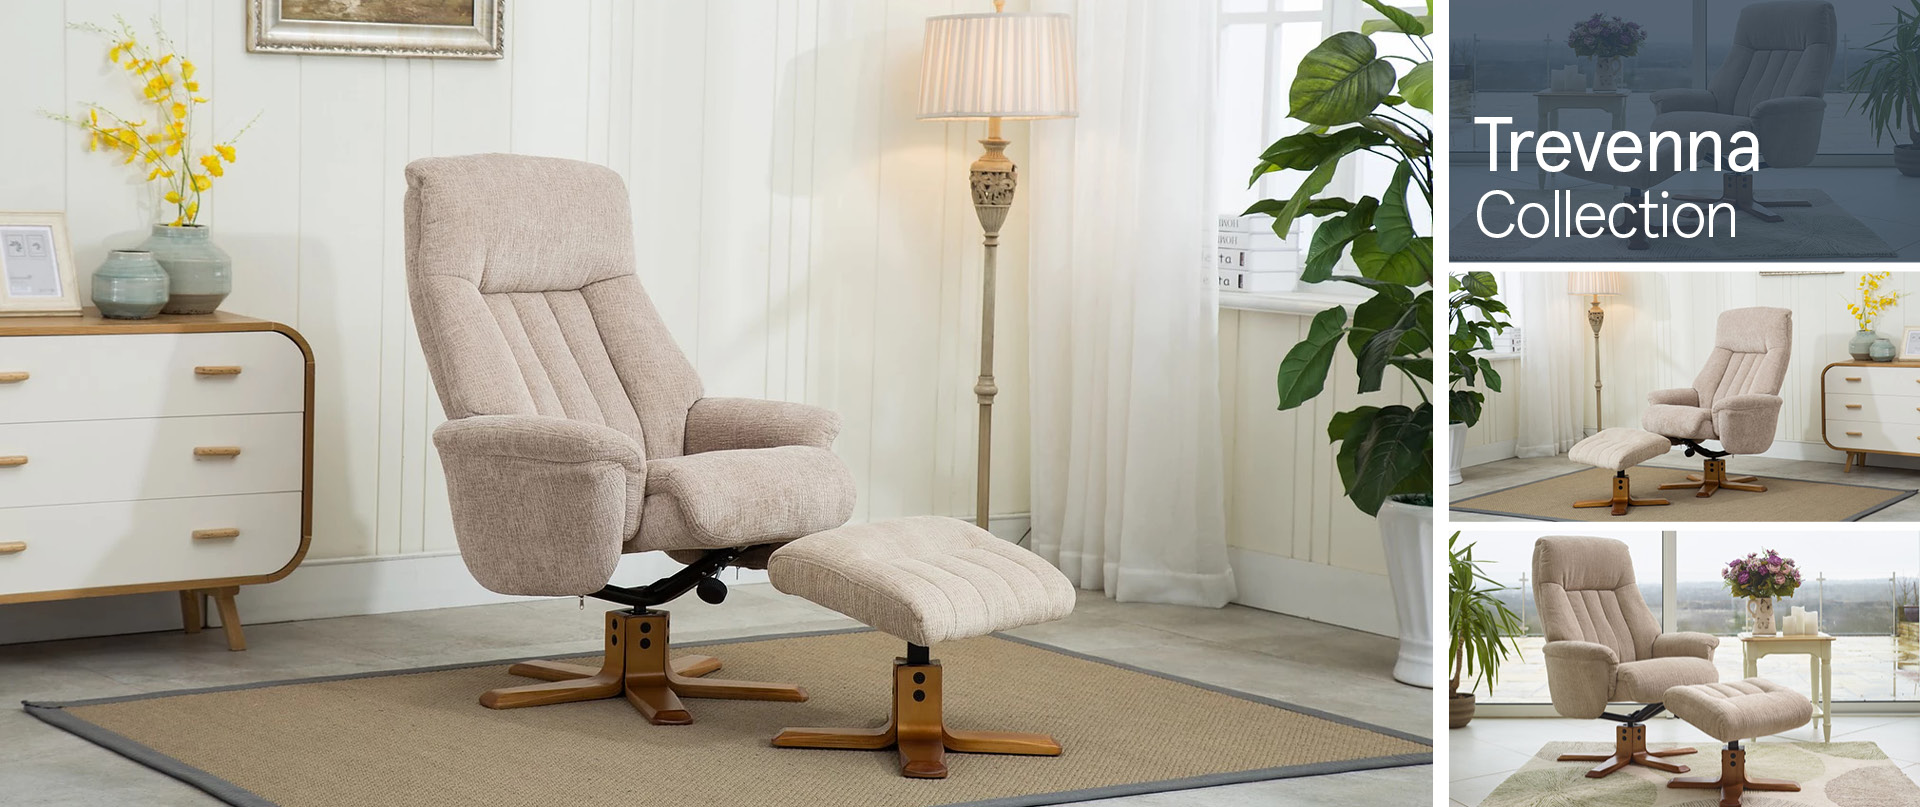 Trevenna All Chairs and Footstools Ranges